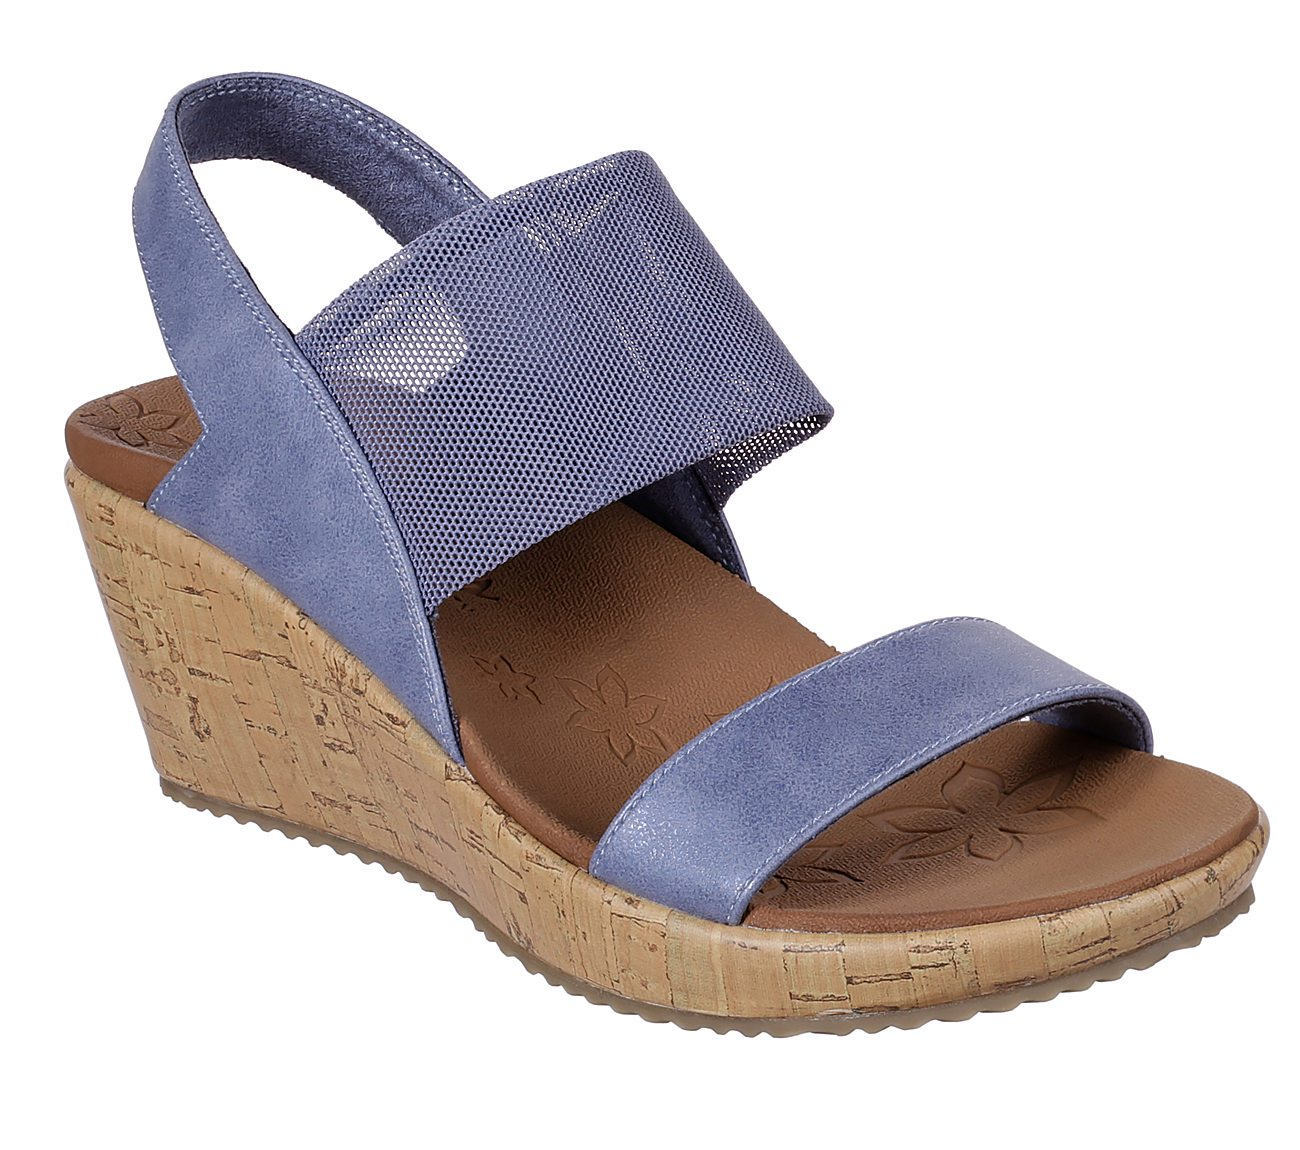 Skechers High Tea Mesh Band Backstrap Sandal